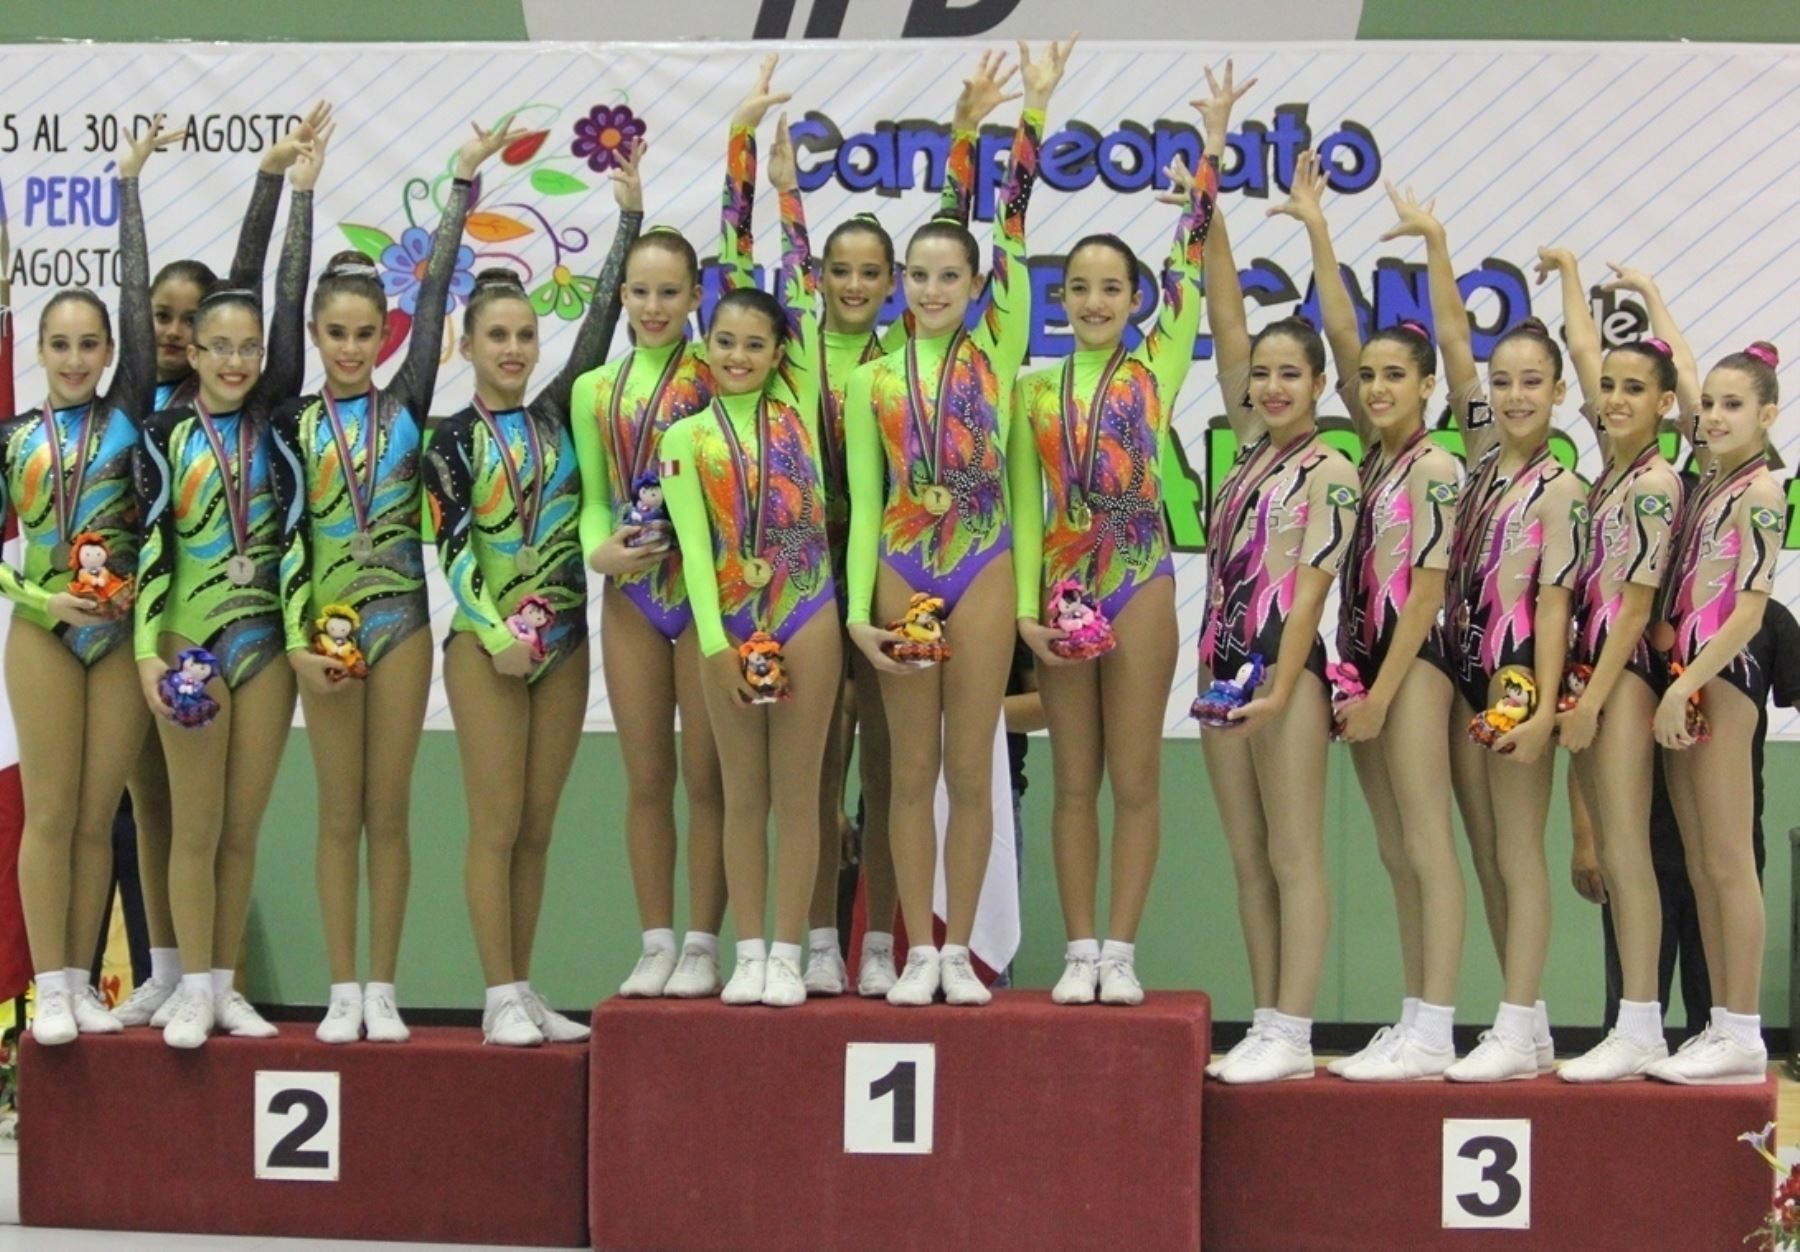 Peru claims 8 medals at 2015 south american championship for Gimnasia aerobica